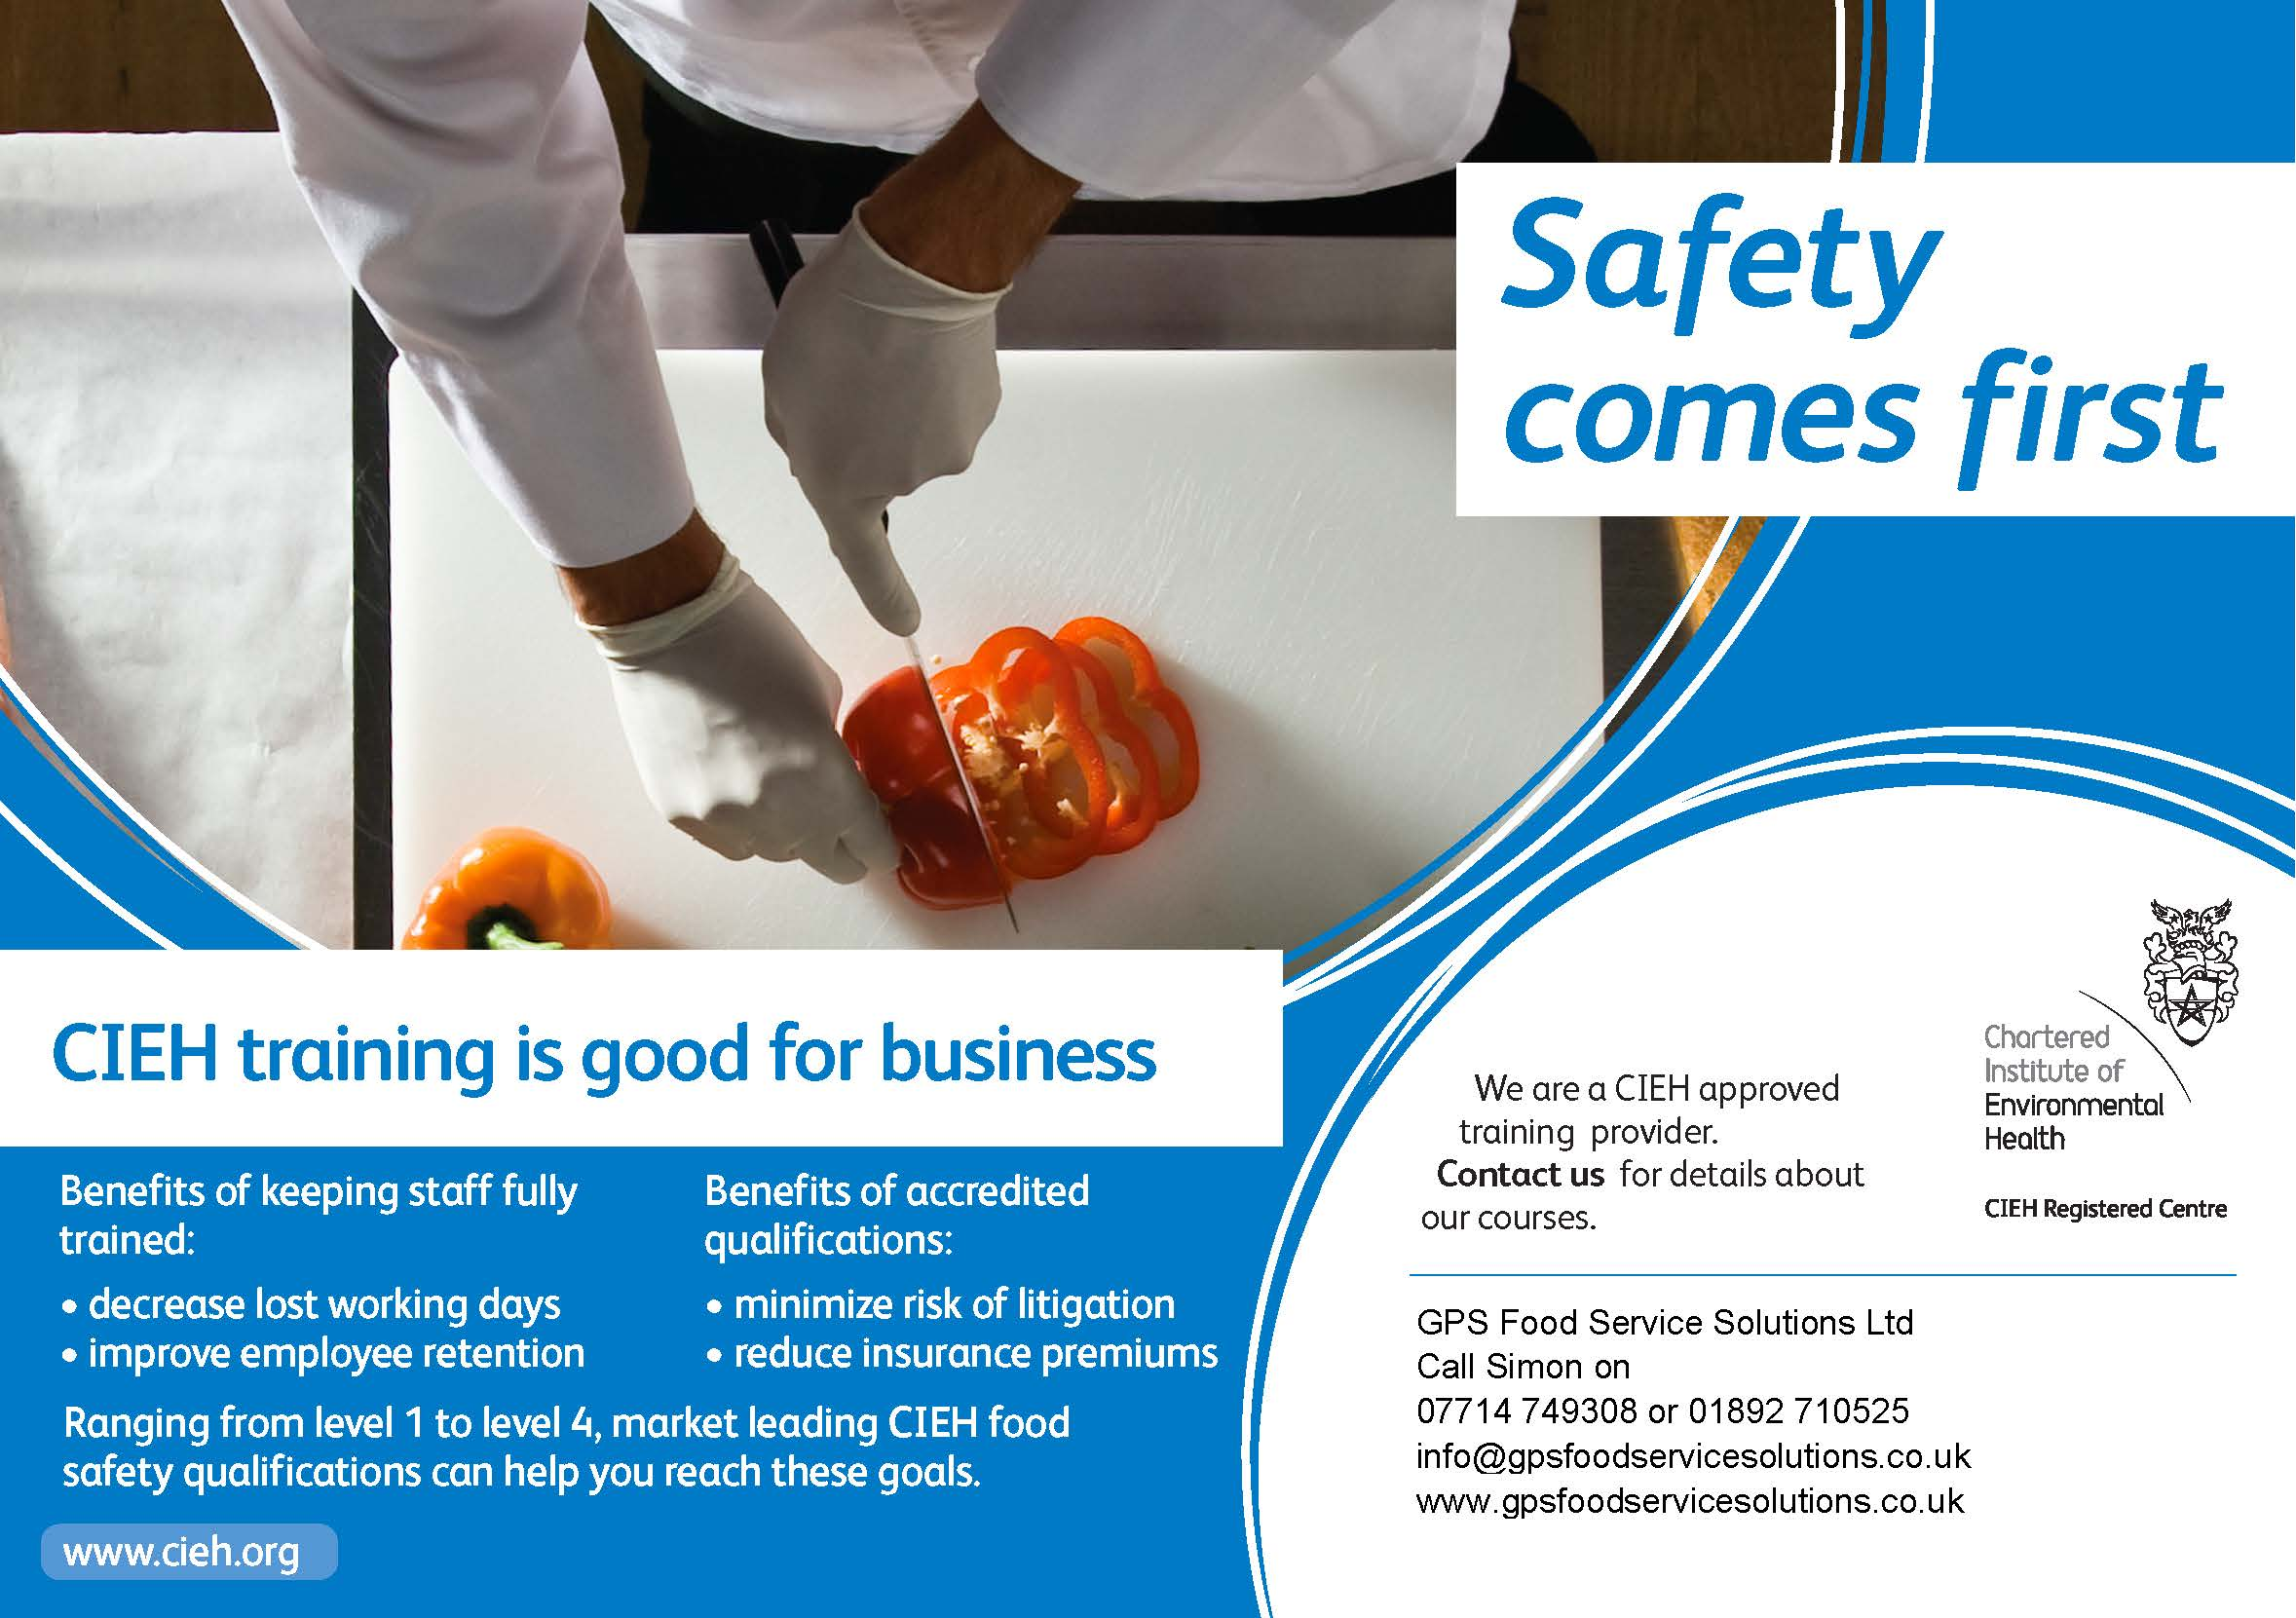 Key Benefits of Food Hygiene Training | GPS Food Service